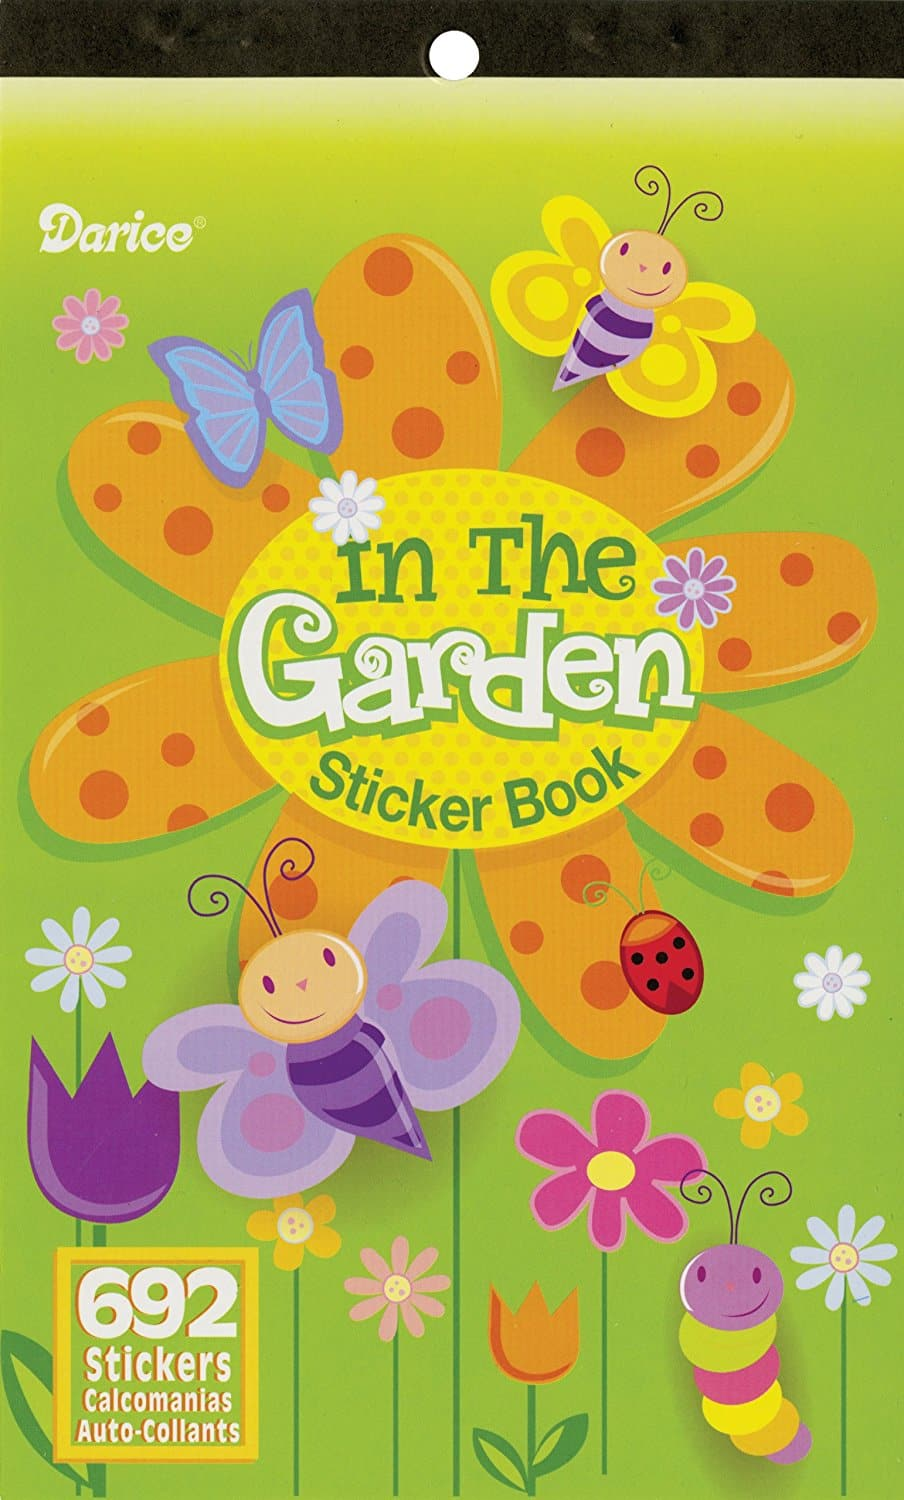 $1.24 shipped Darice Sticker Book In The Garden-692 Stickers w/ Prime @ Amazon